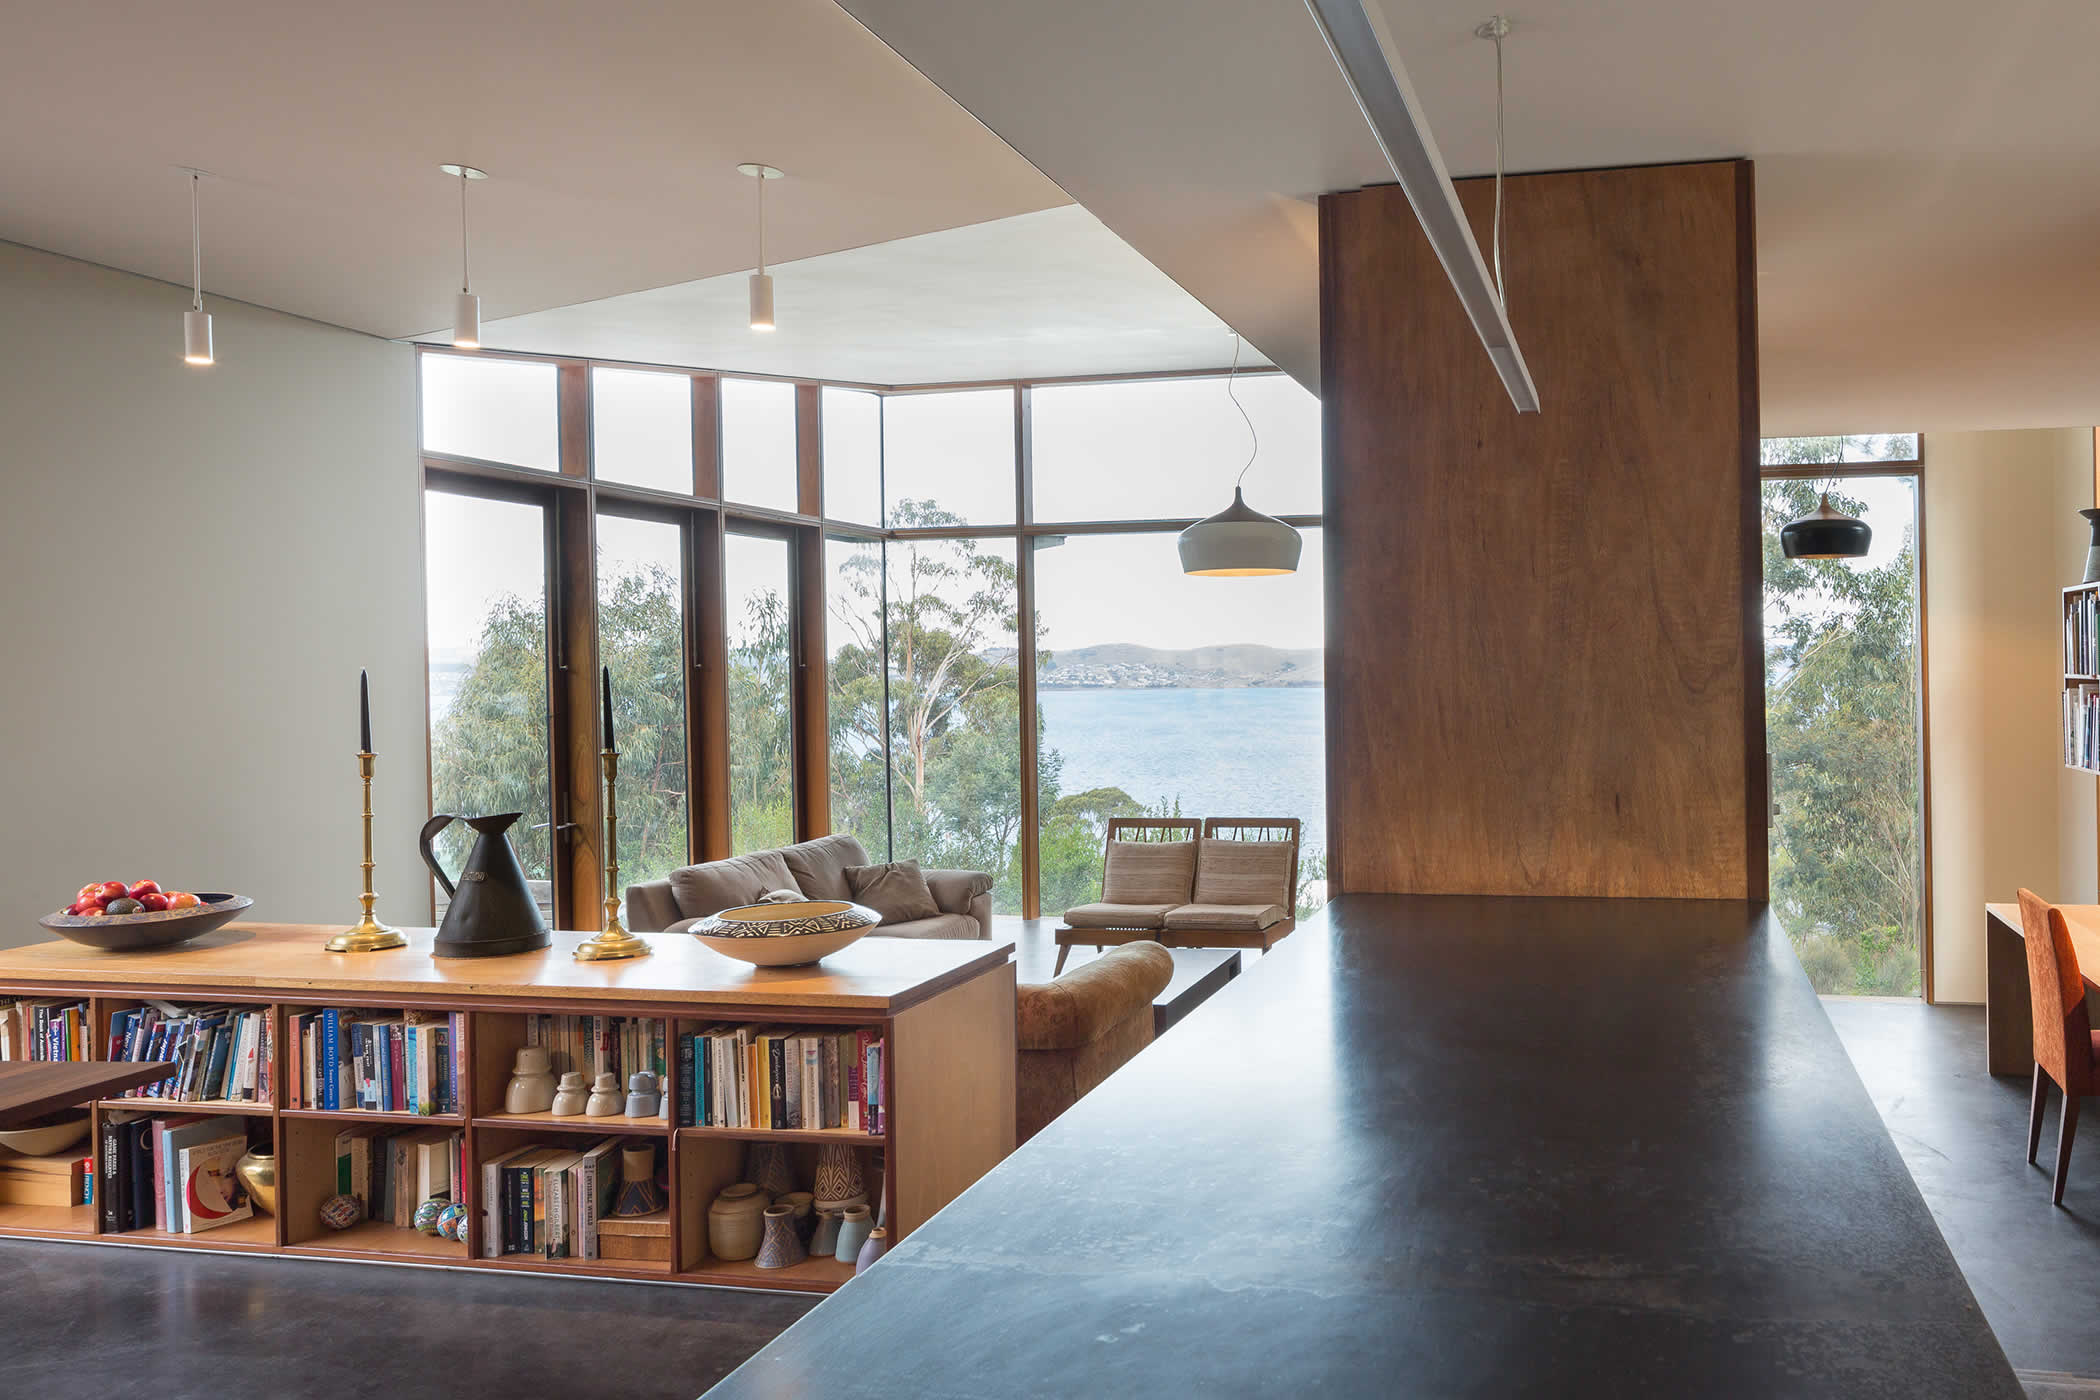 Sandy Bay, Tasmania: The main pavilion opens to the courtyards and different views. Floor and ceiling levels, alcoves and clever storage define interlinked dining, living, study, kitchen and pantry / laundry space. Photo by Thomas Ryan.